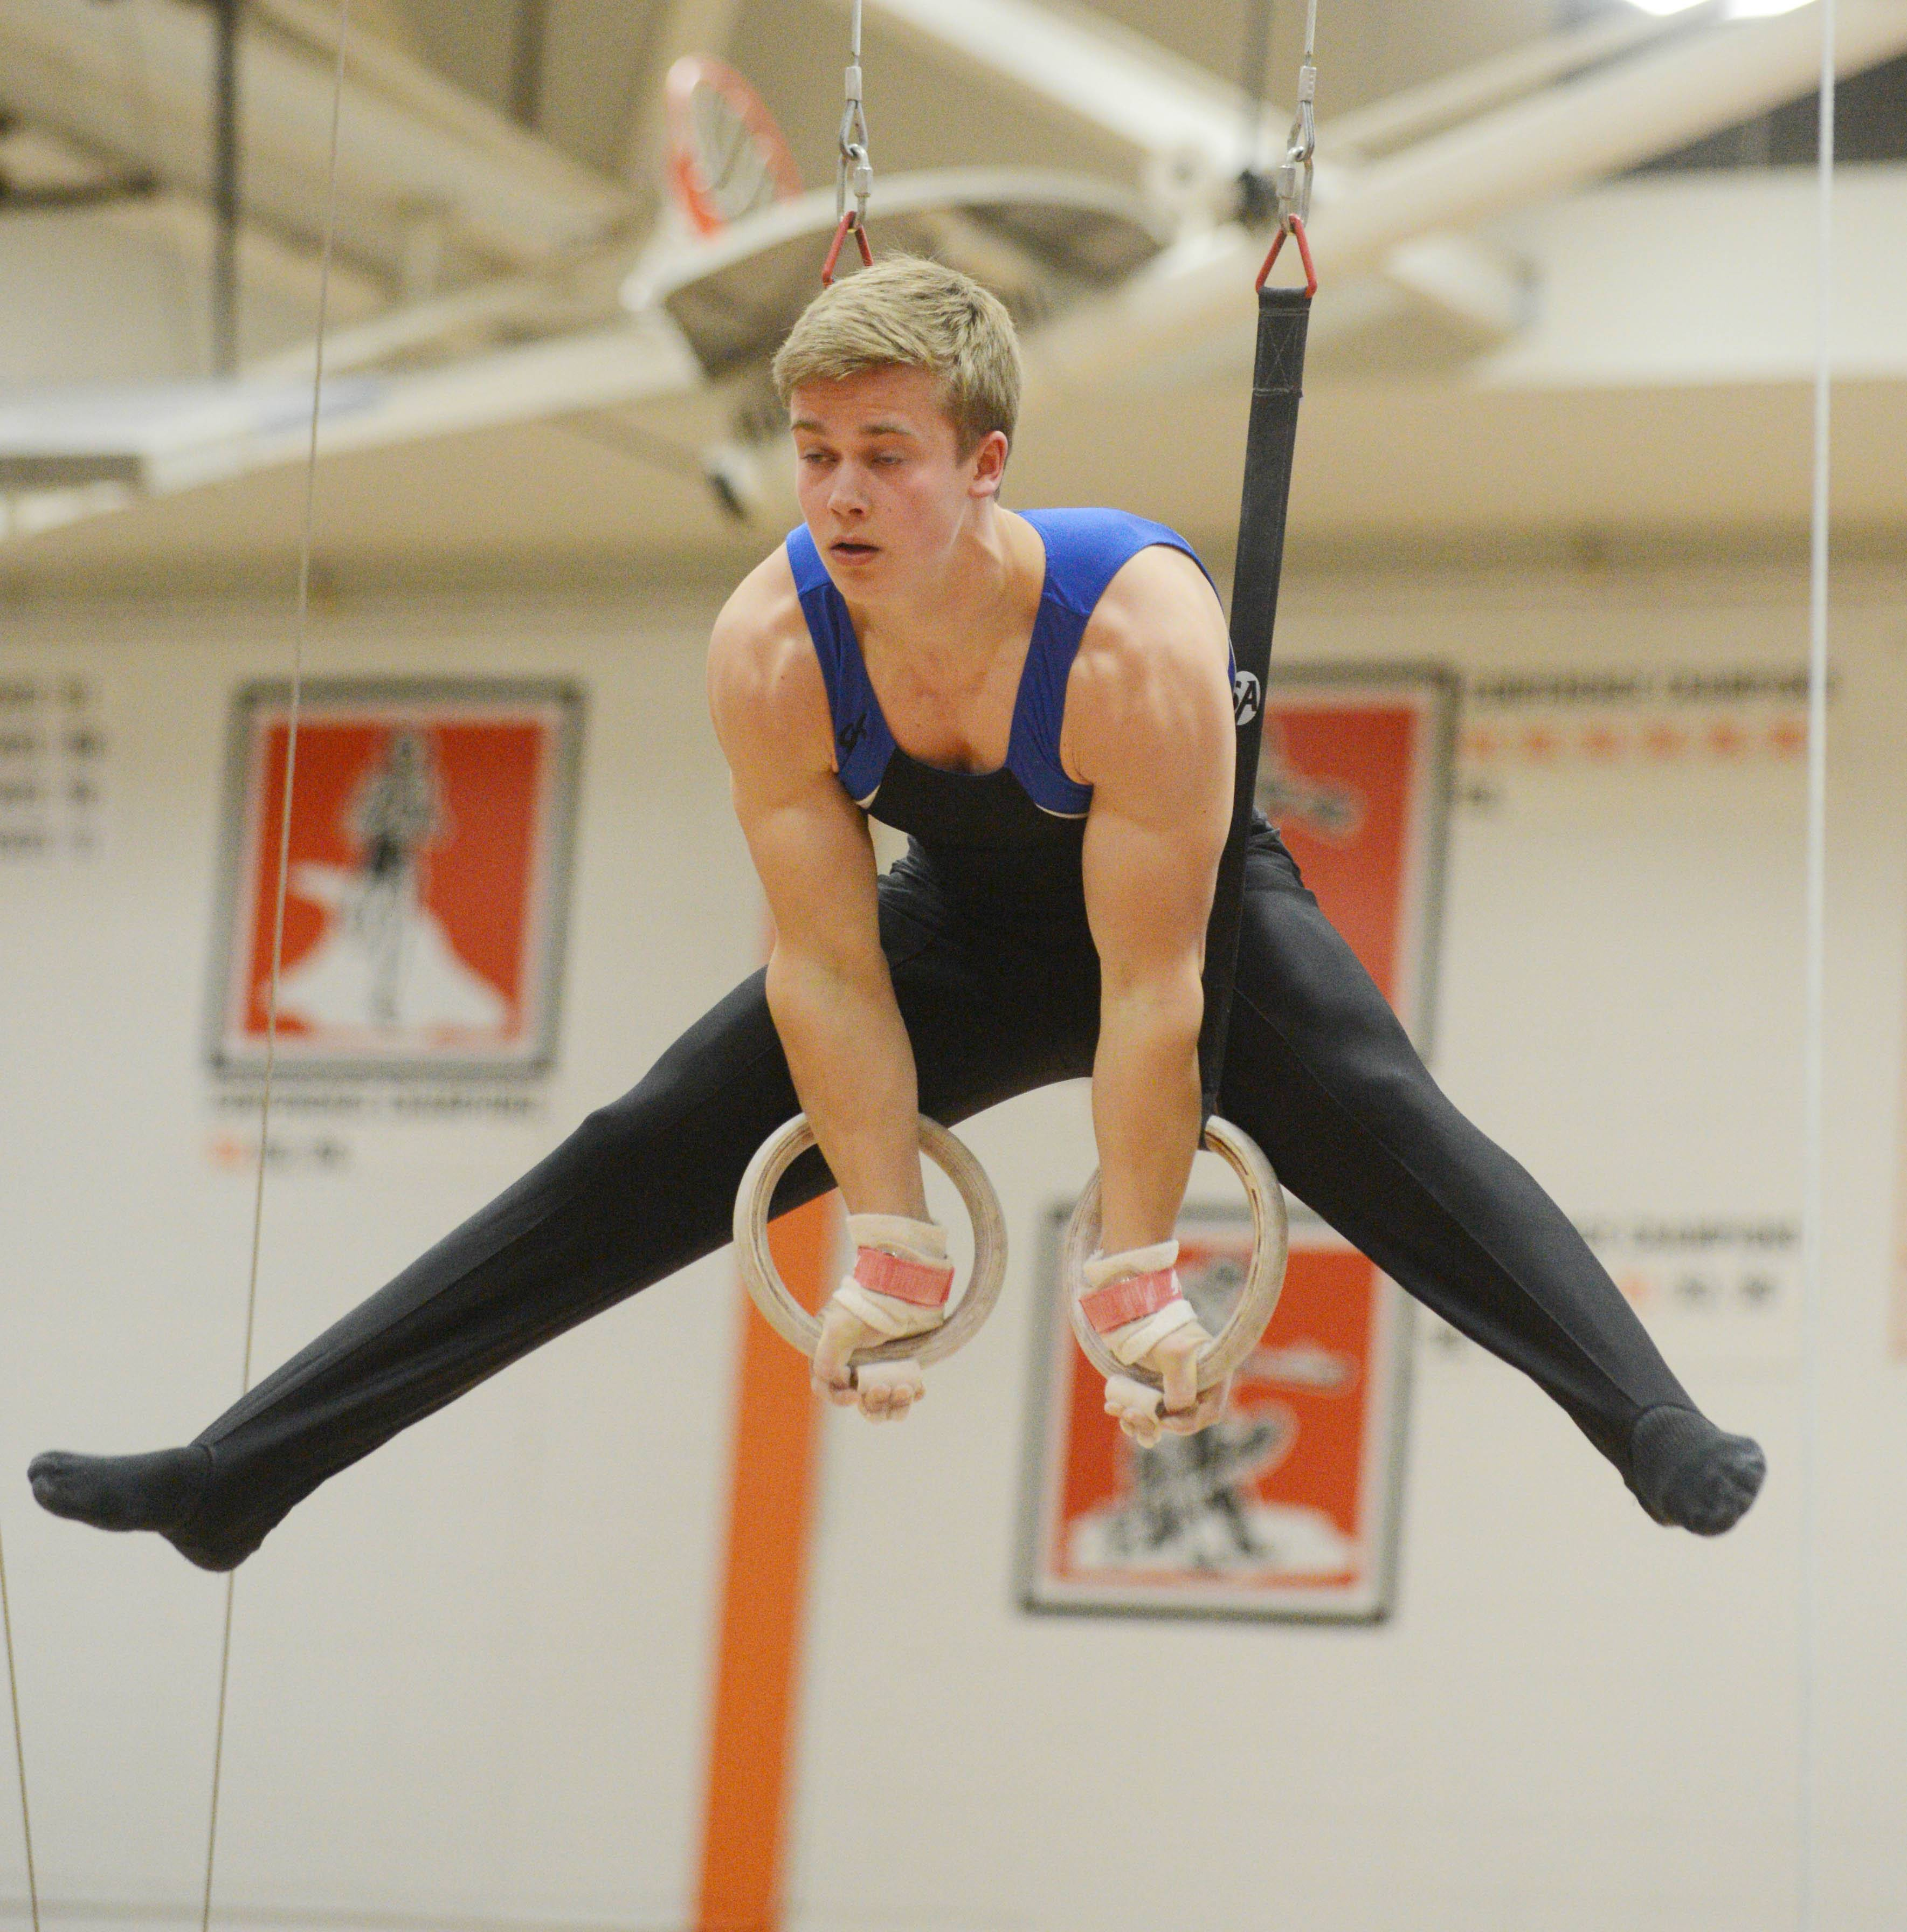 Paul Michna/pmichna@dailyherald.comConnor Ritchie of Wheaton Warrenville South on the rings during the Wheaton Warrenville South boys gymnastics sectional Wednesday.